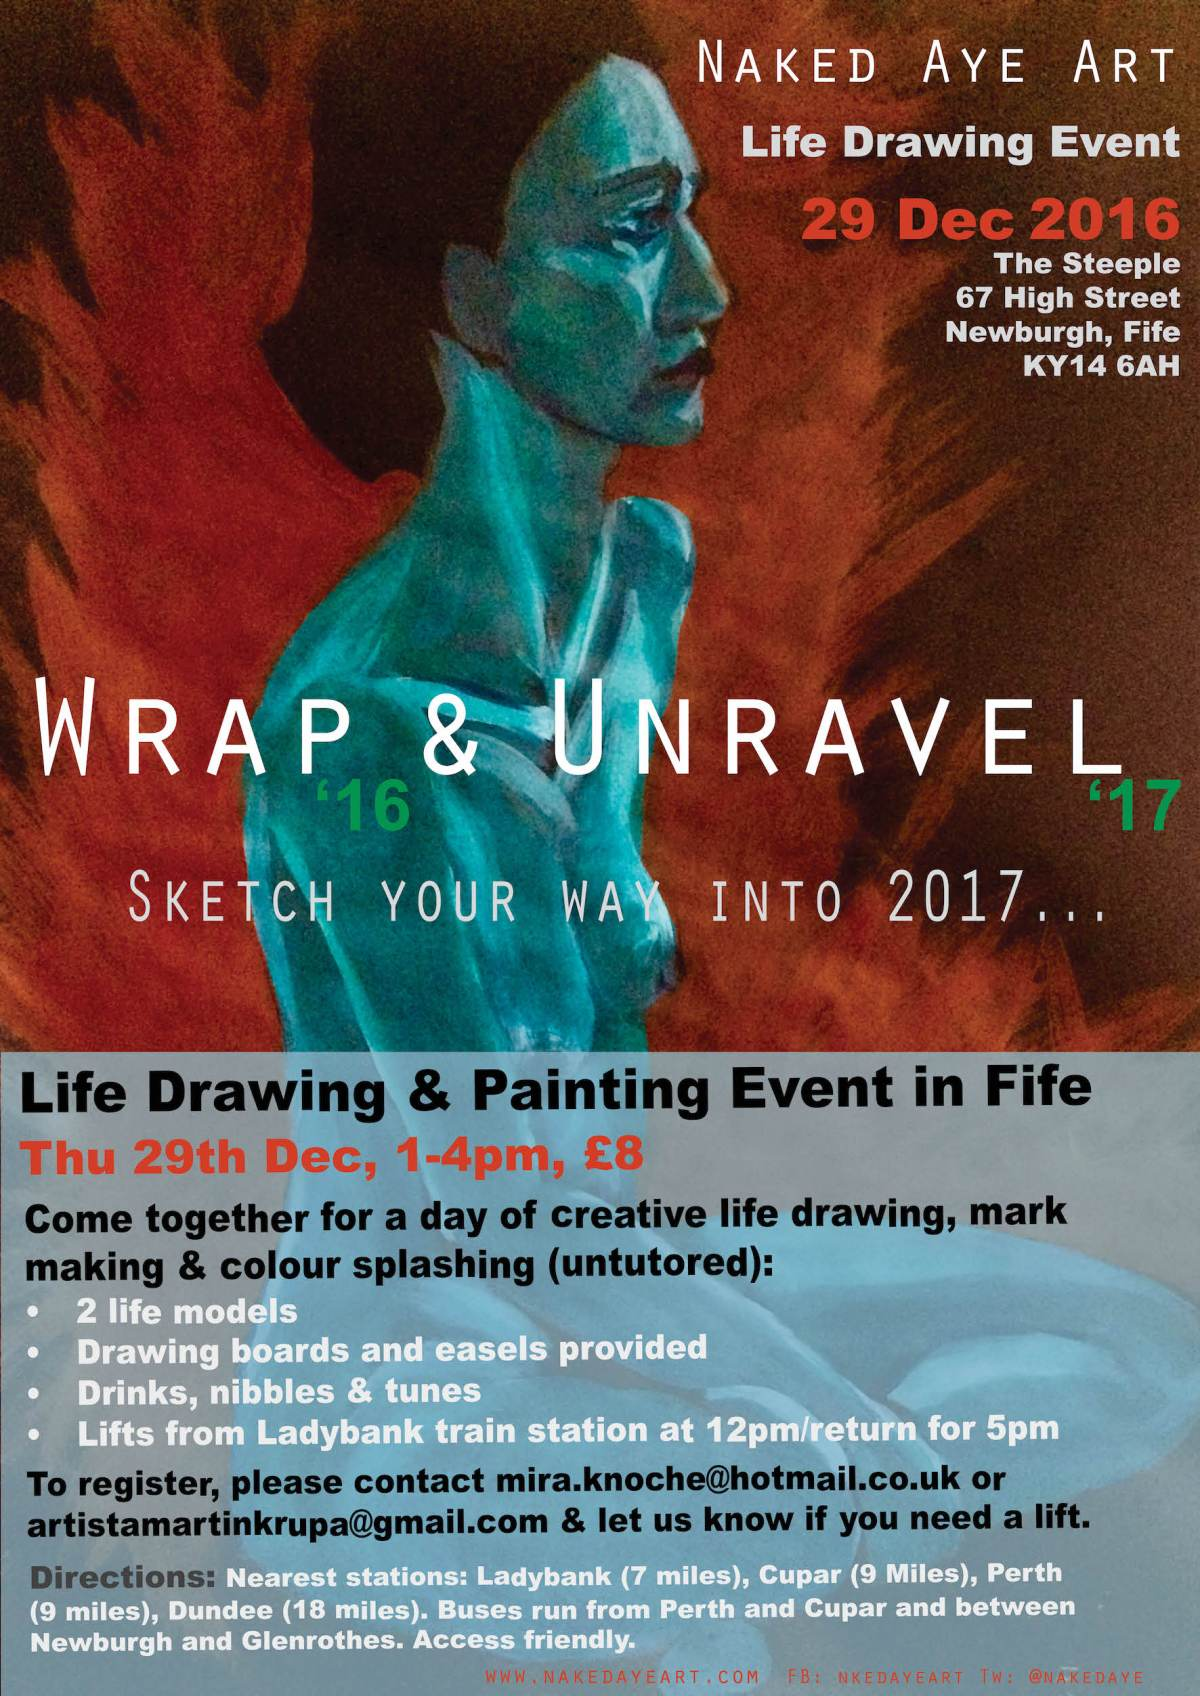 Wrap & Unravel Life-Drawing Event in Fife